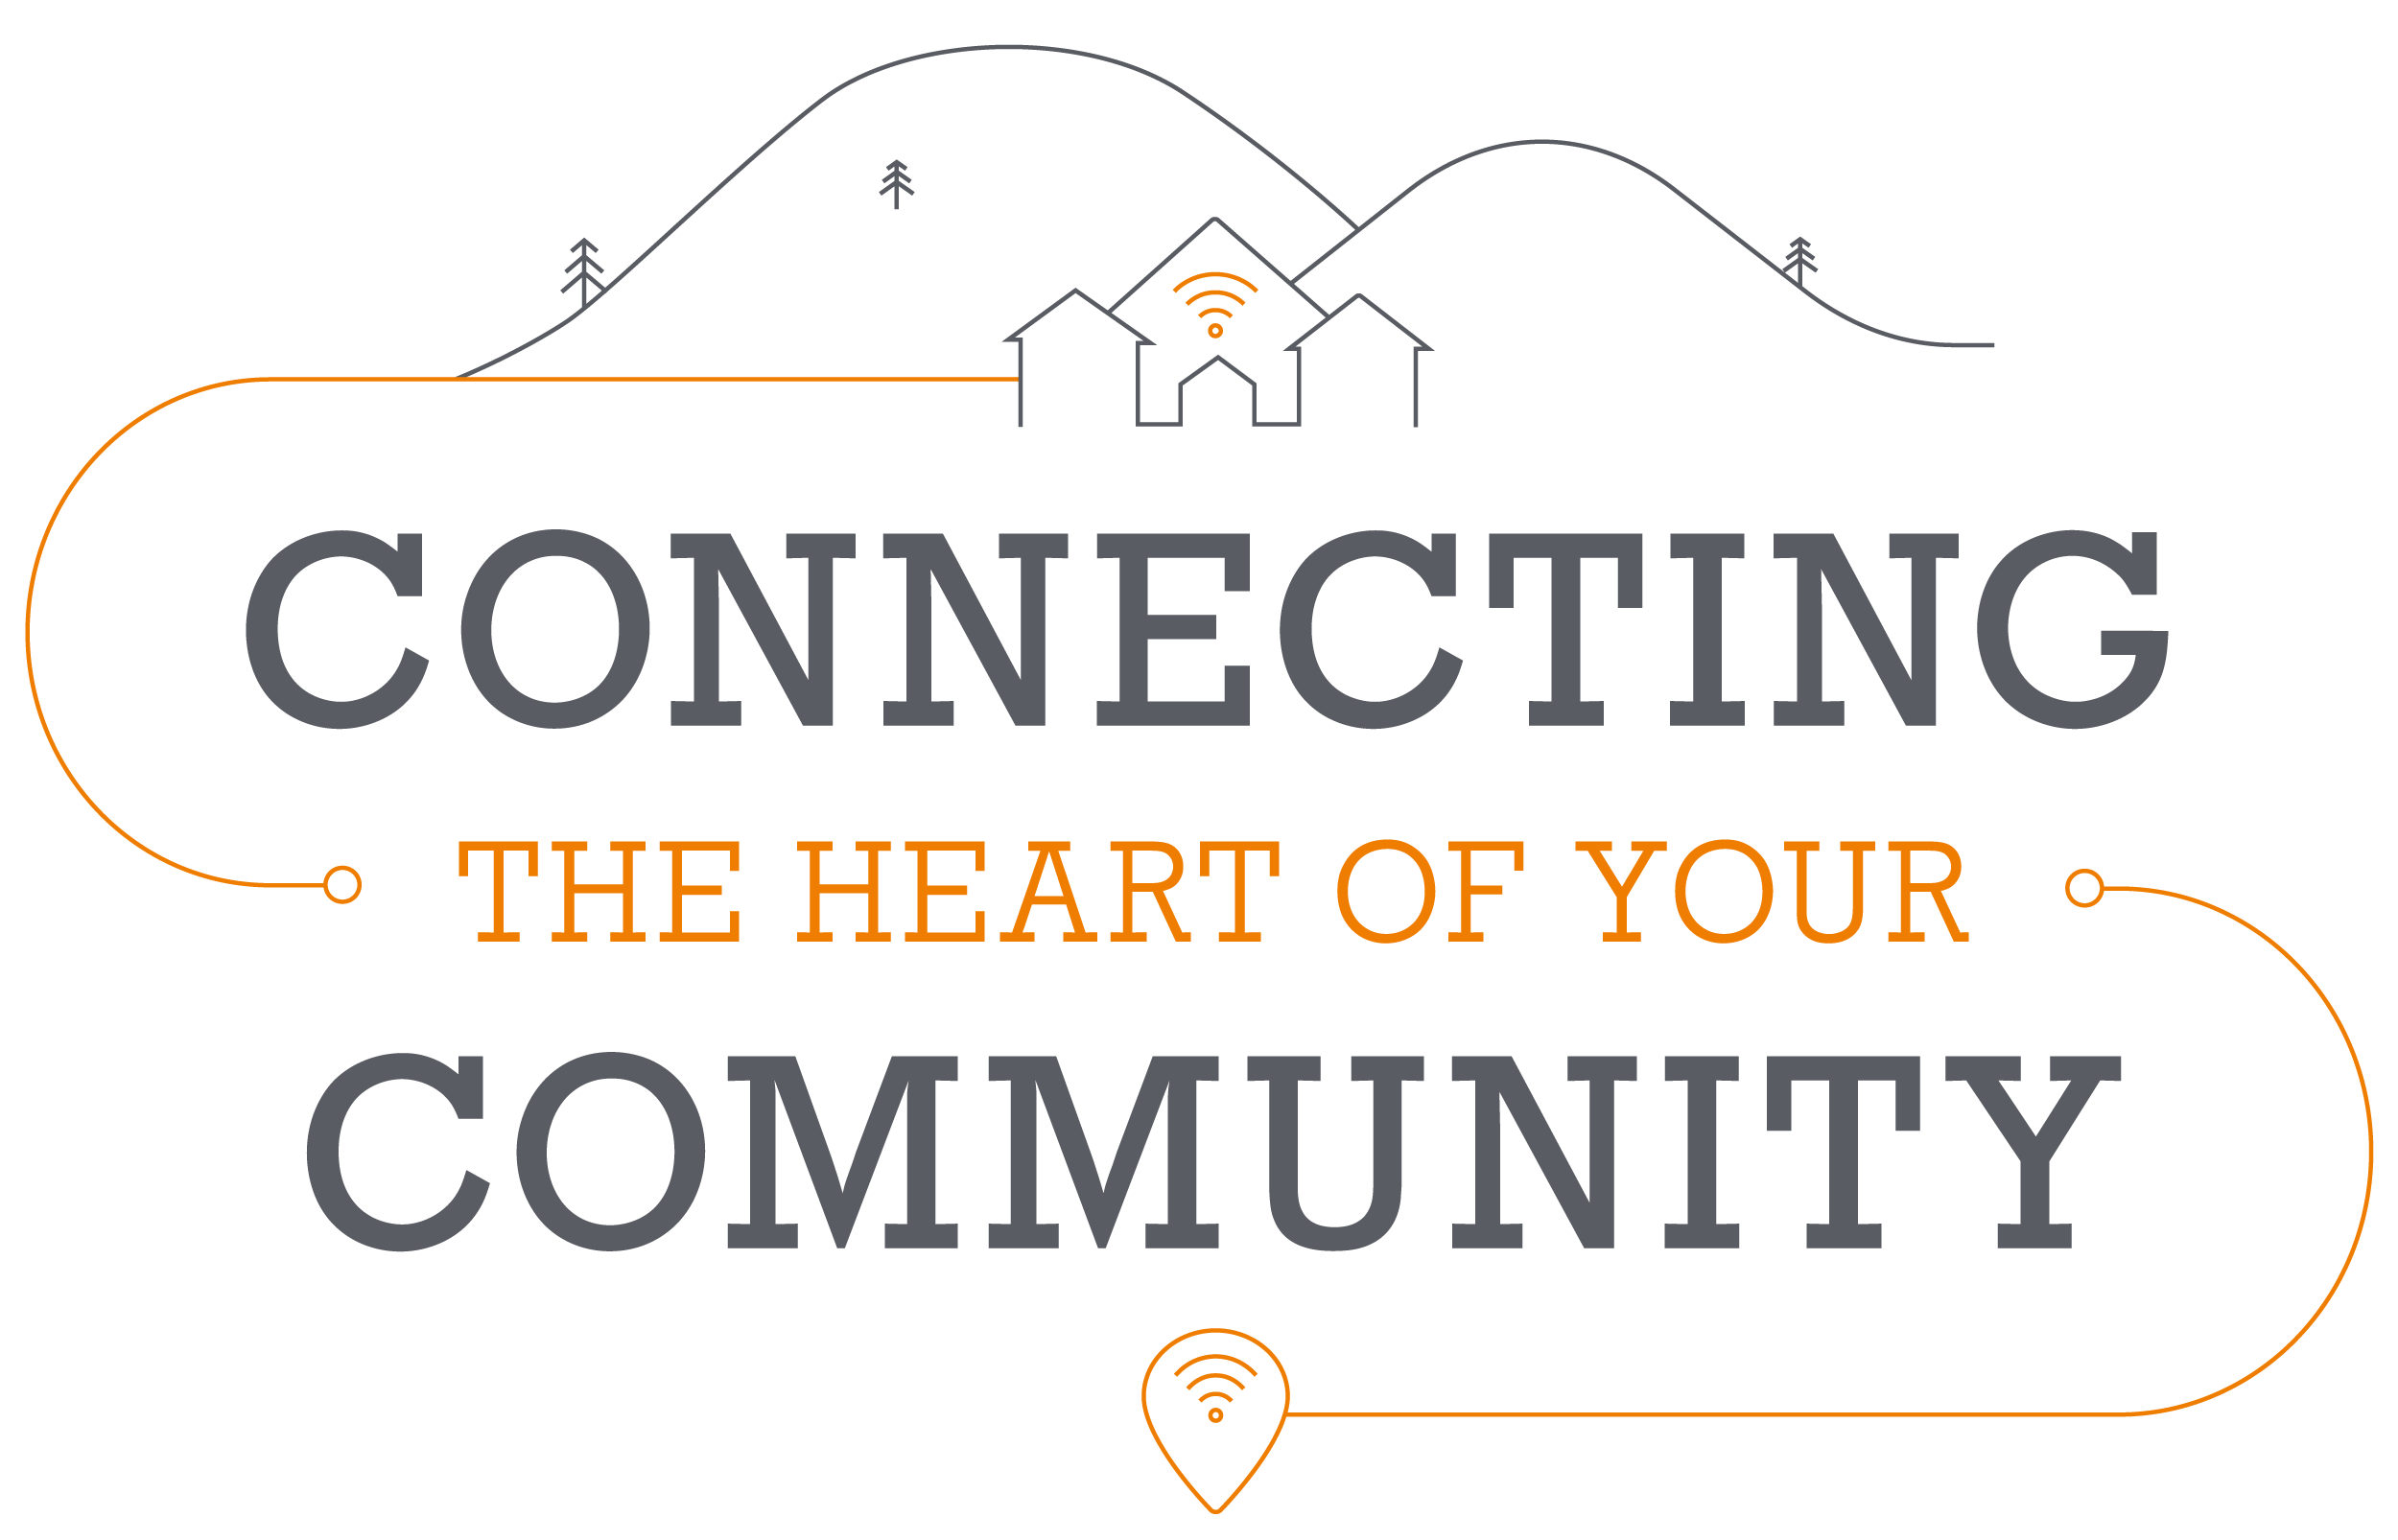 Connecting the heart of your community